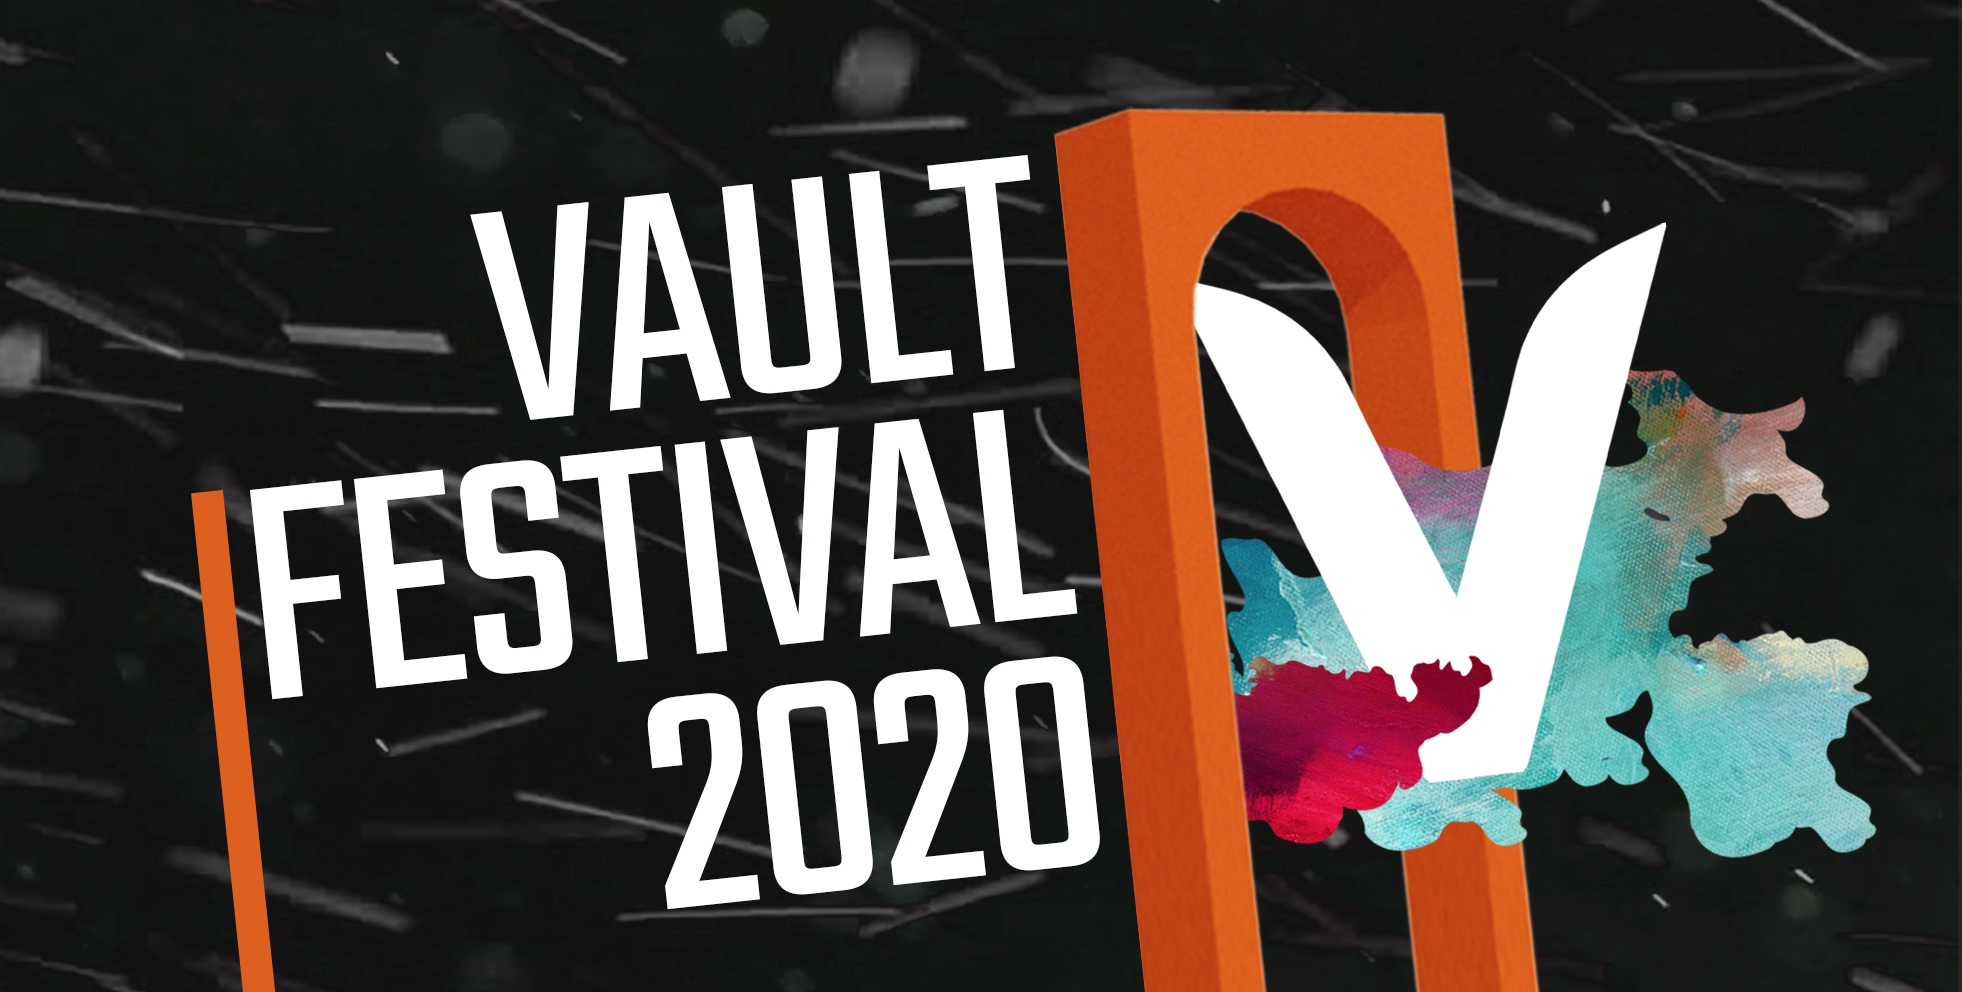 The text Vault Festival 2020, with a giant V next to it, underneath an illustration of an orange arch. It is the Vault Festival logo.